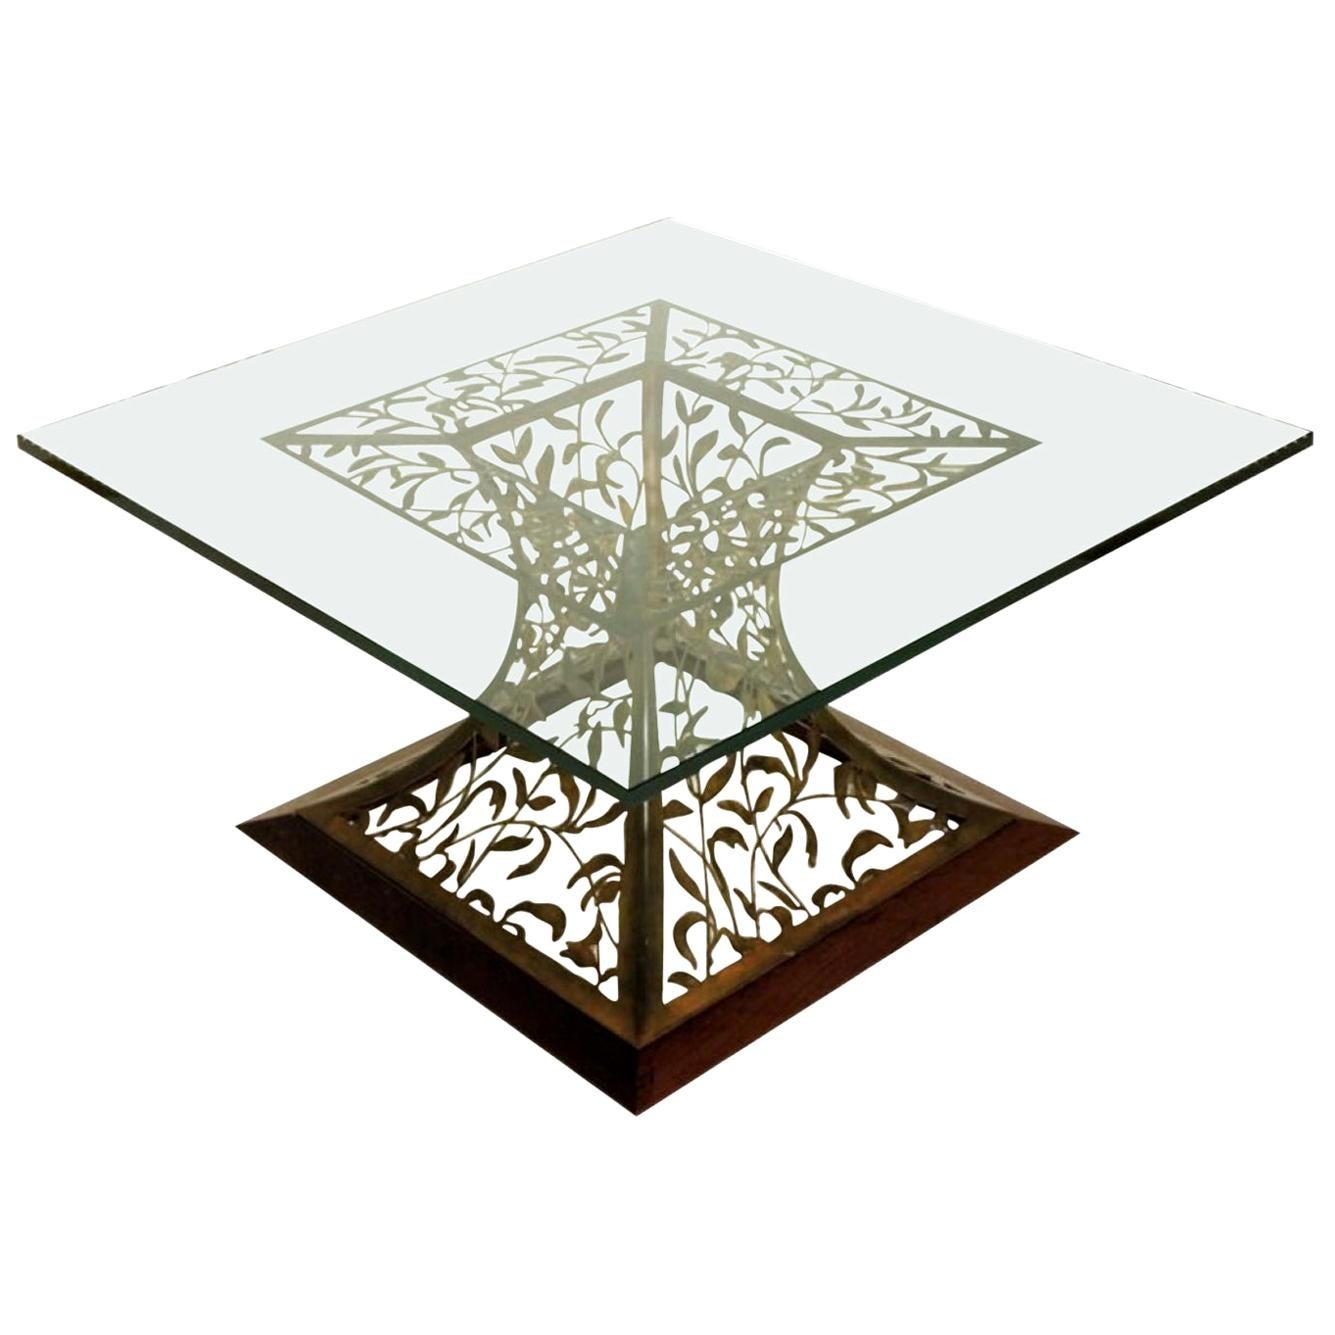 Mixed-Media Filigree Cocktail Table in Blackened Steel and Beveled Edge Glass